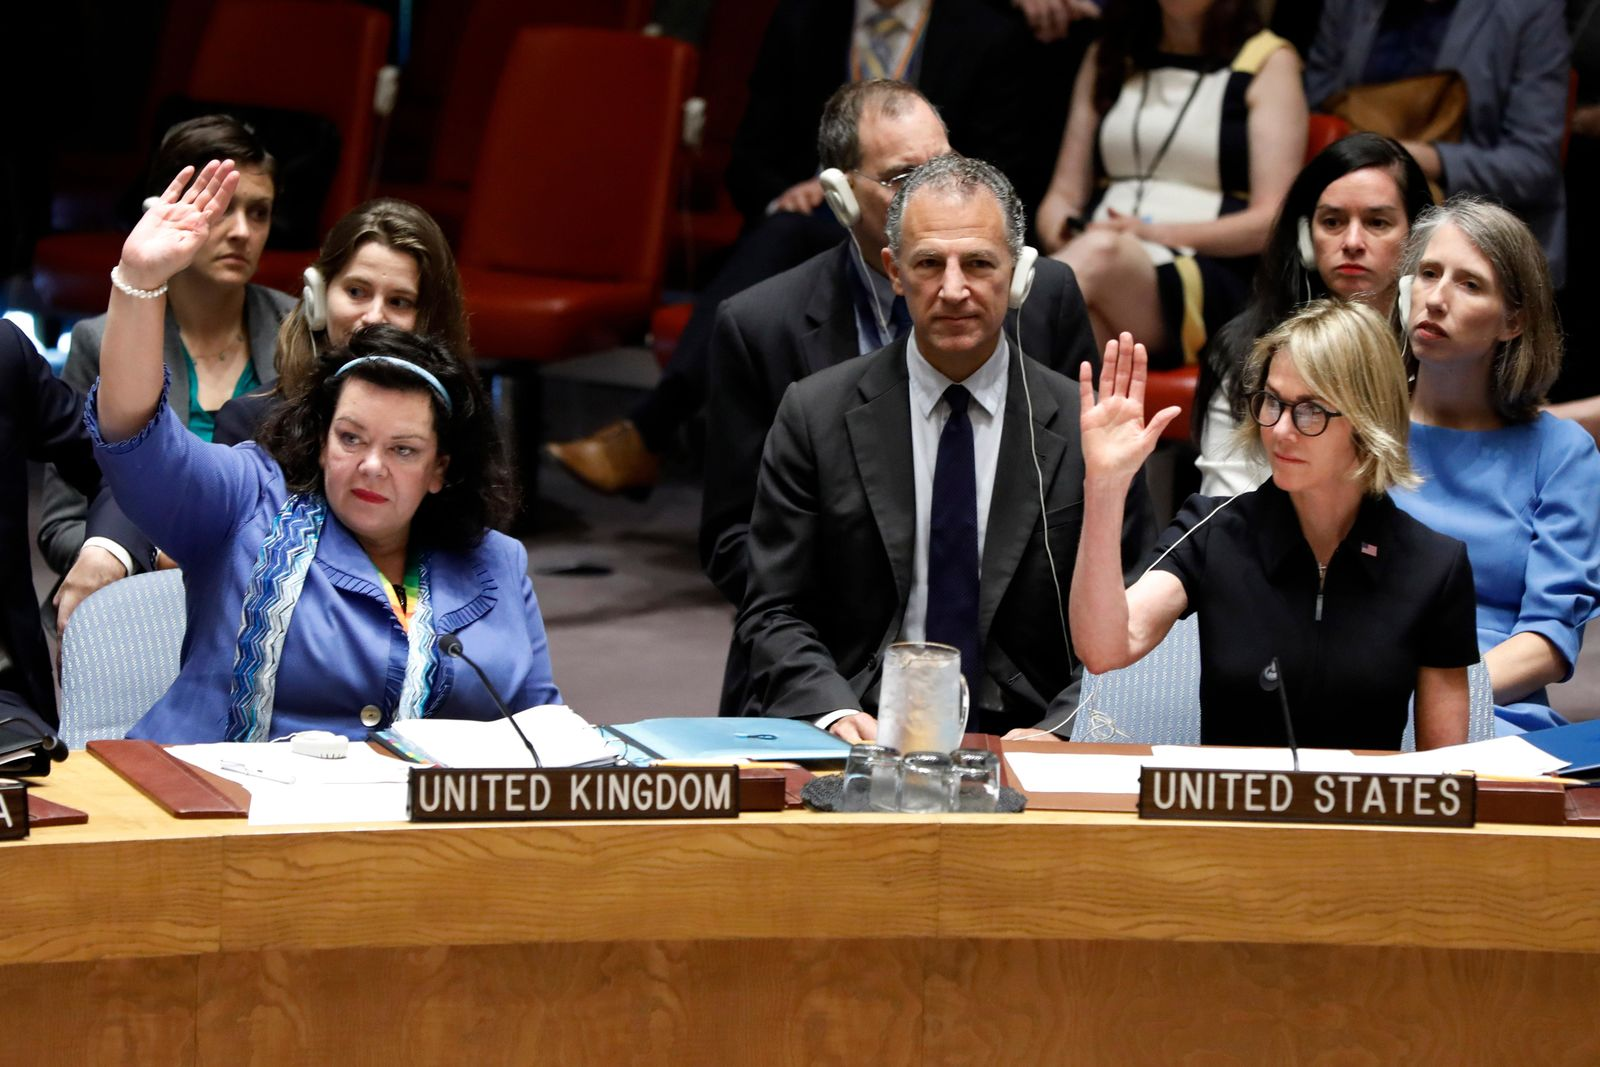 New U.S. Ambassador Kelly Craft, right, and Britain's Ambassador Karen Pierce vote during Craft's first Security Council meeting, at United Nations headquarters, Thursday, Sept. 12, 2019. (AP Photo/Richard Drew)